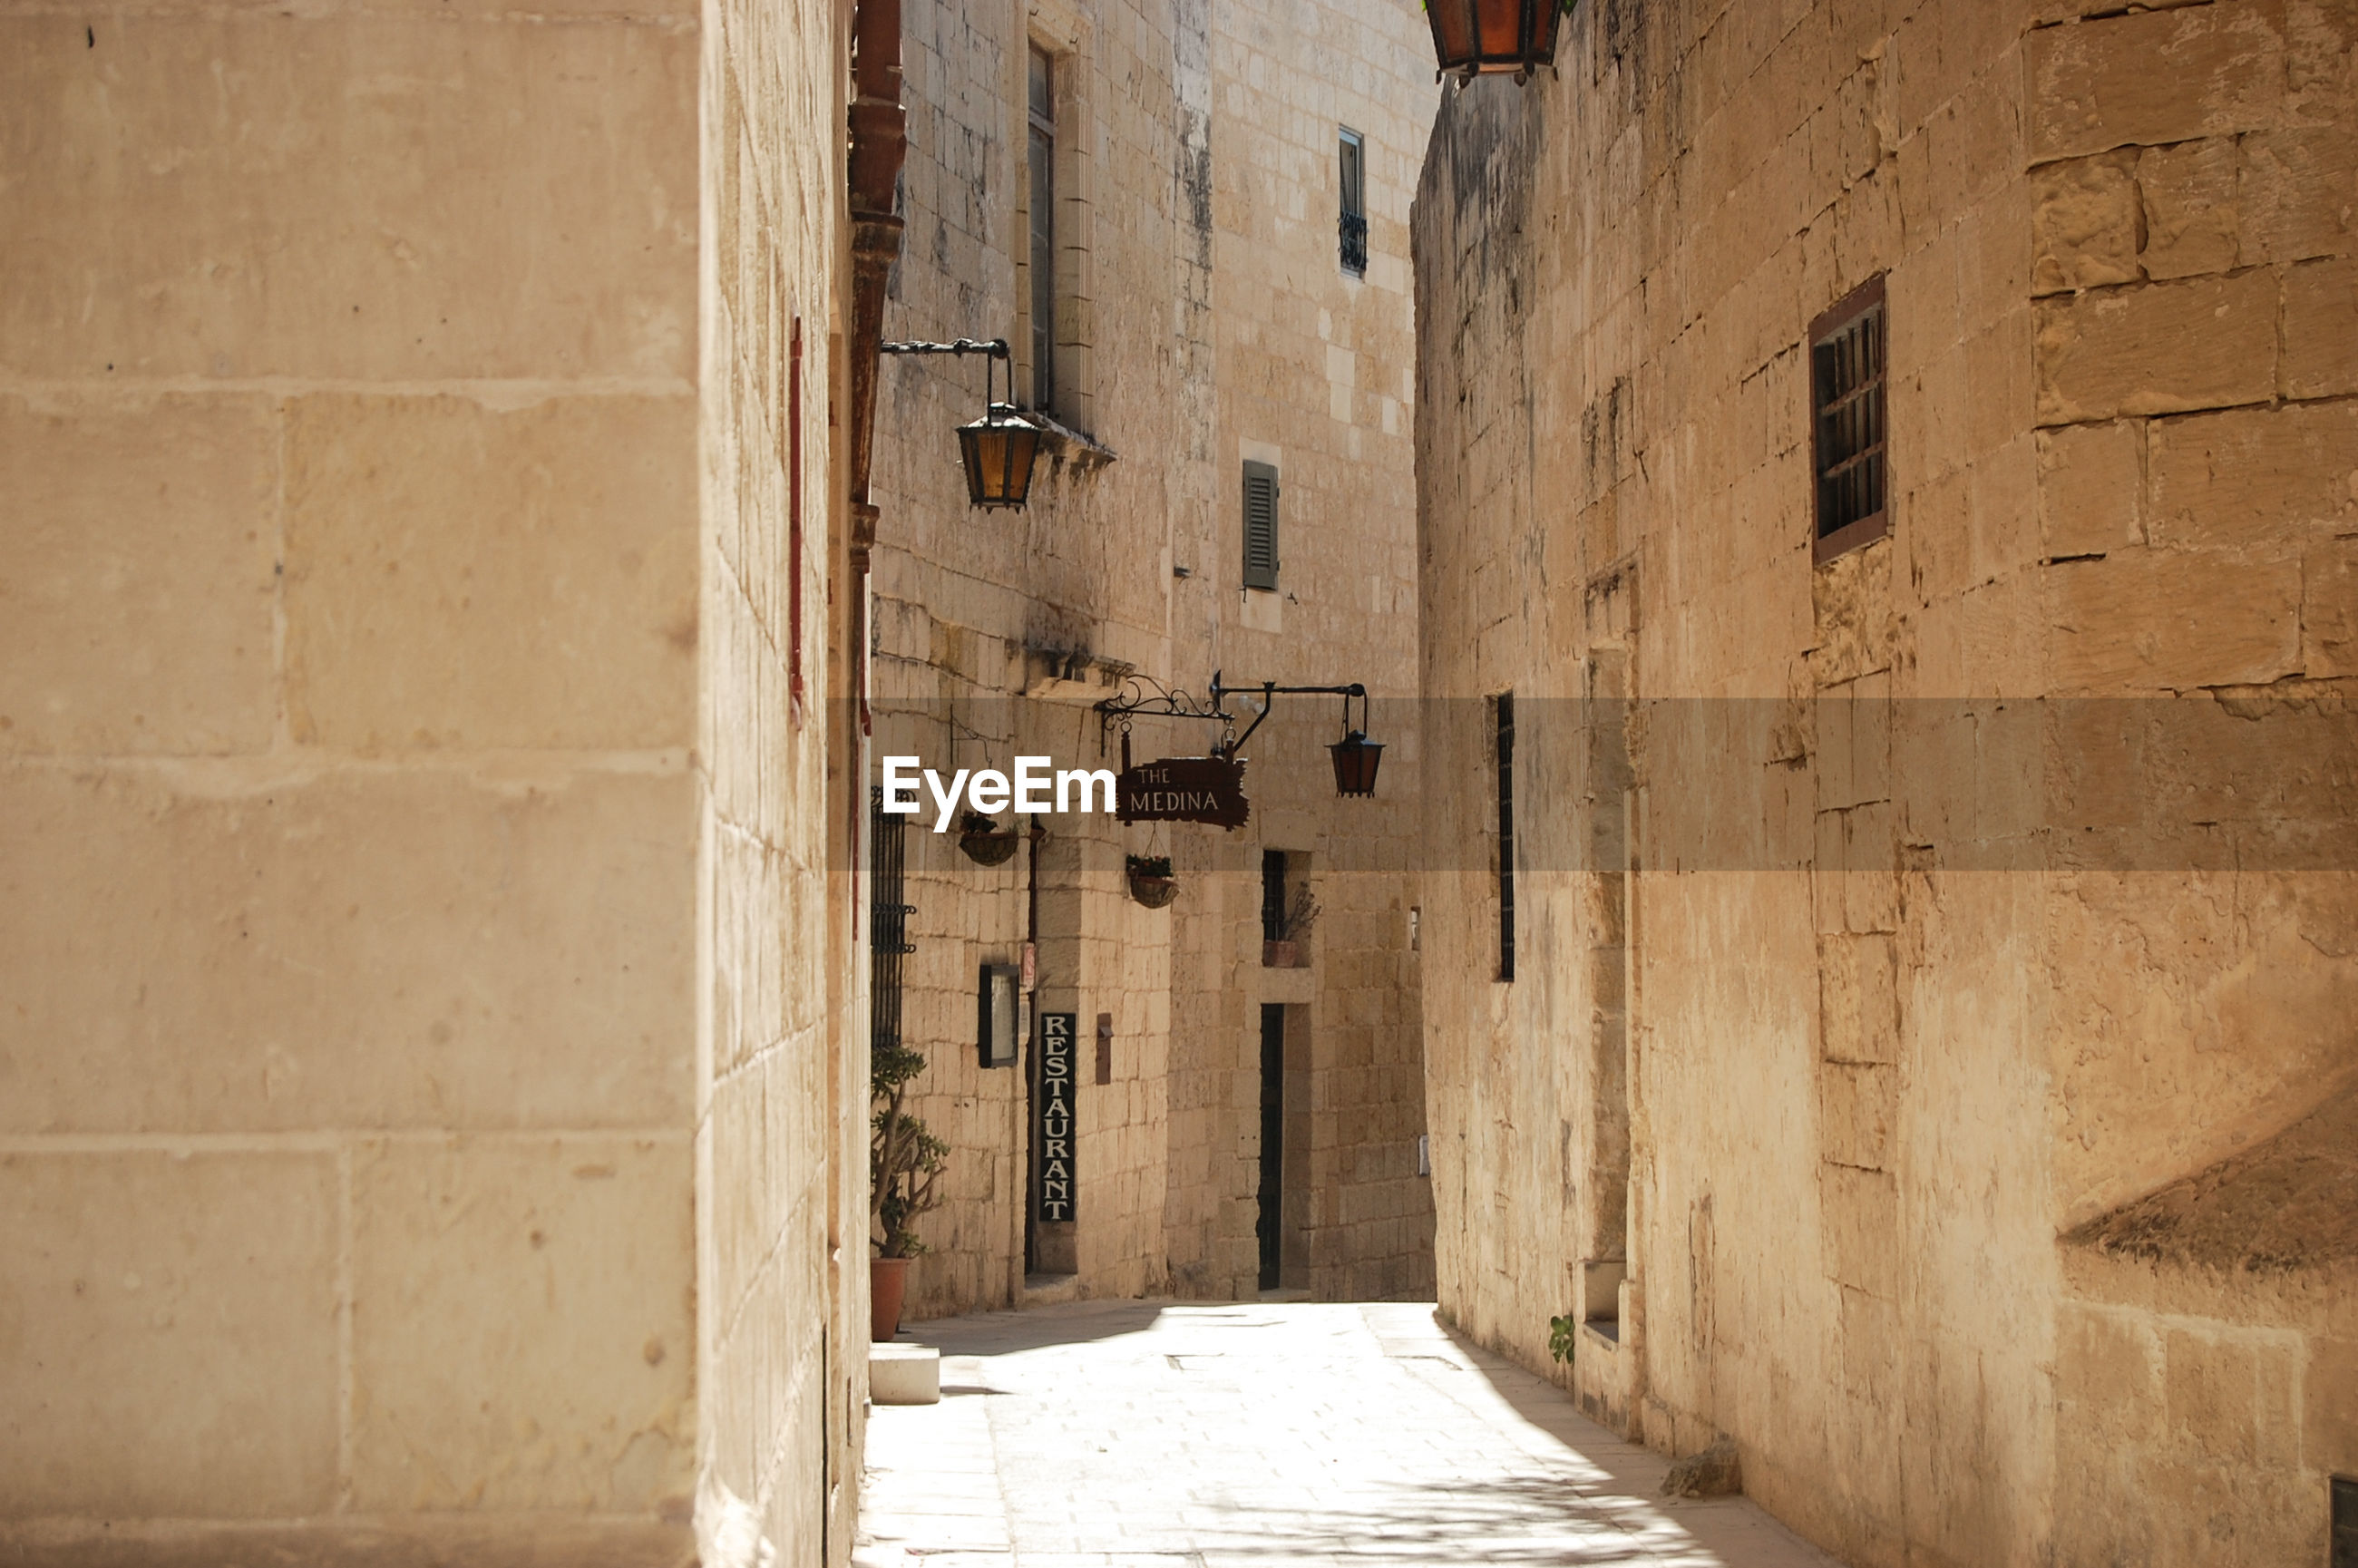 NARROW ALLEY AMIDST OLD BUILDINGS